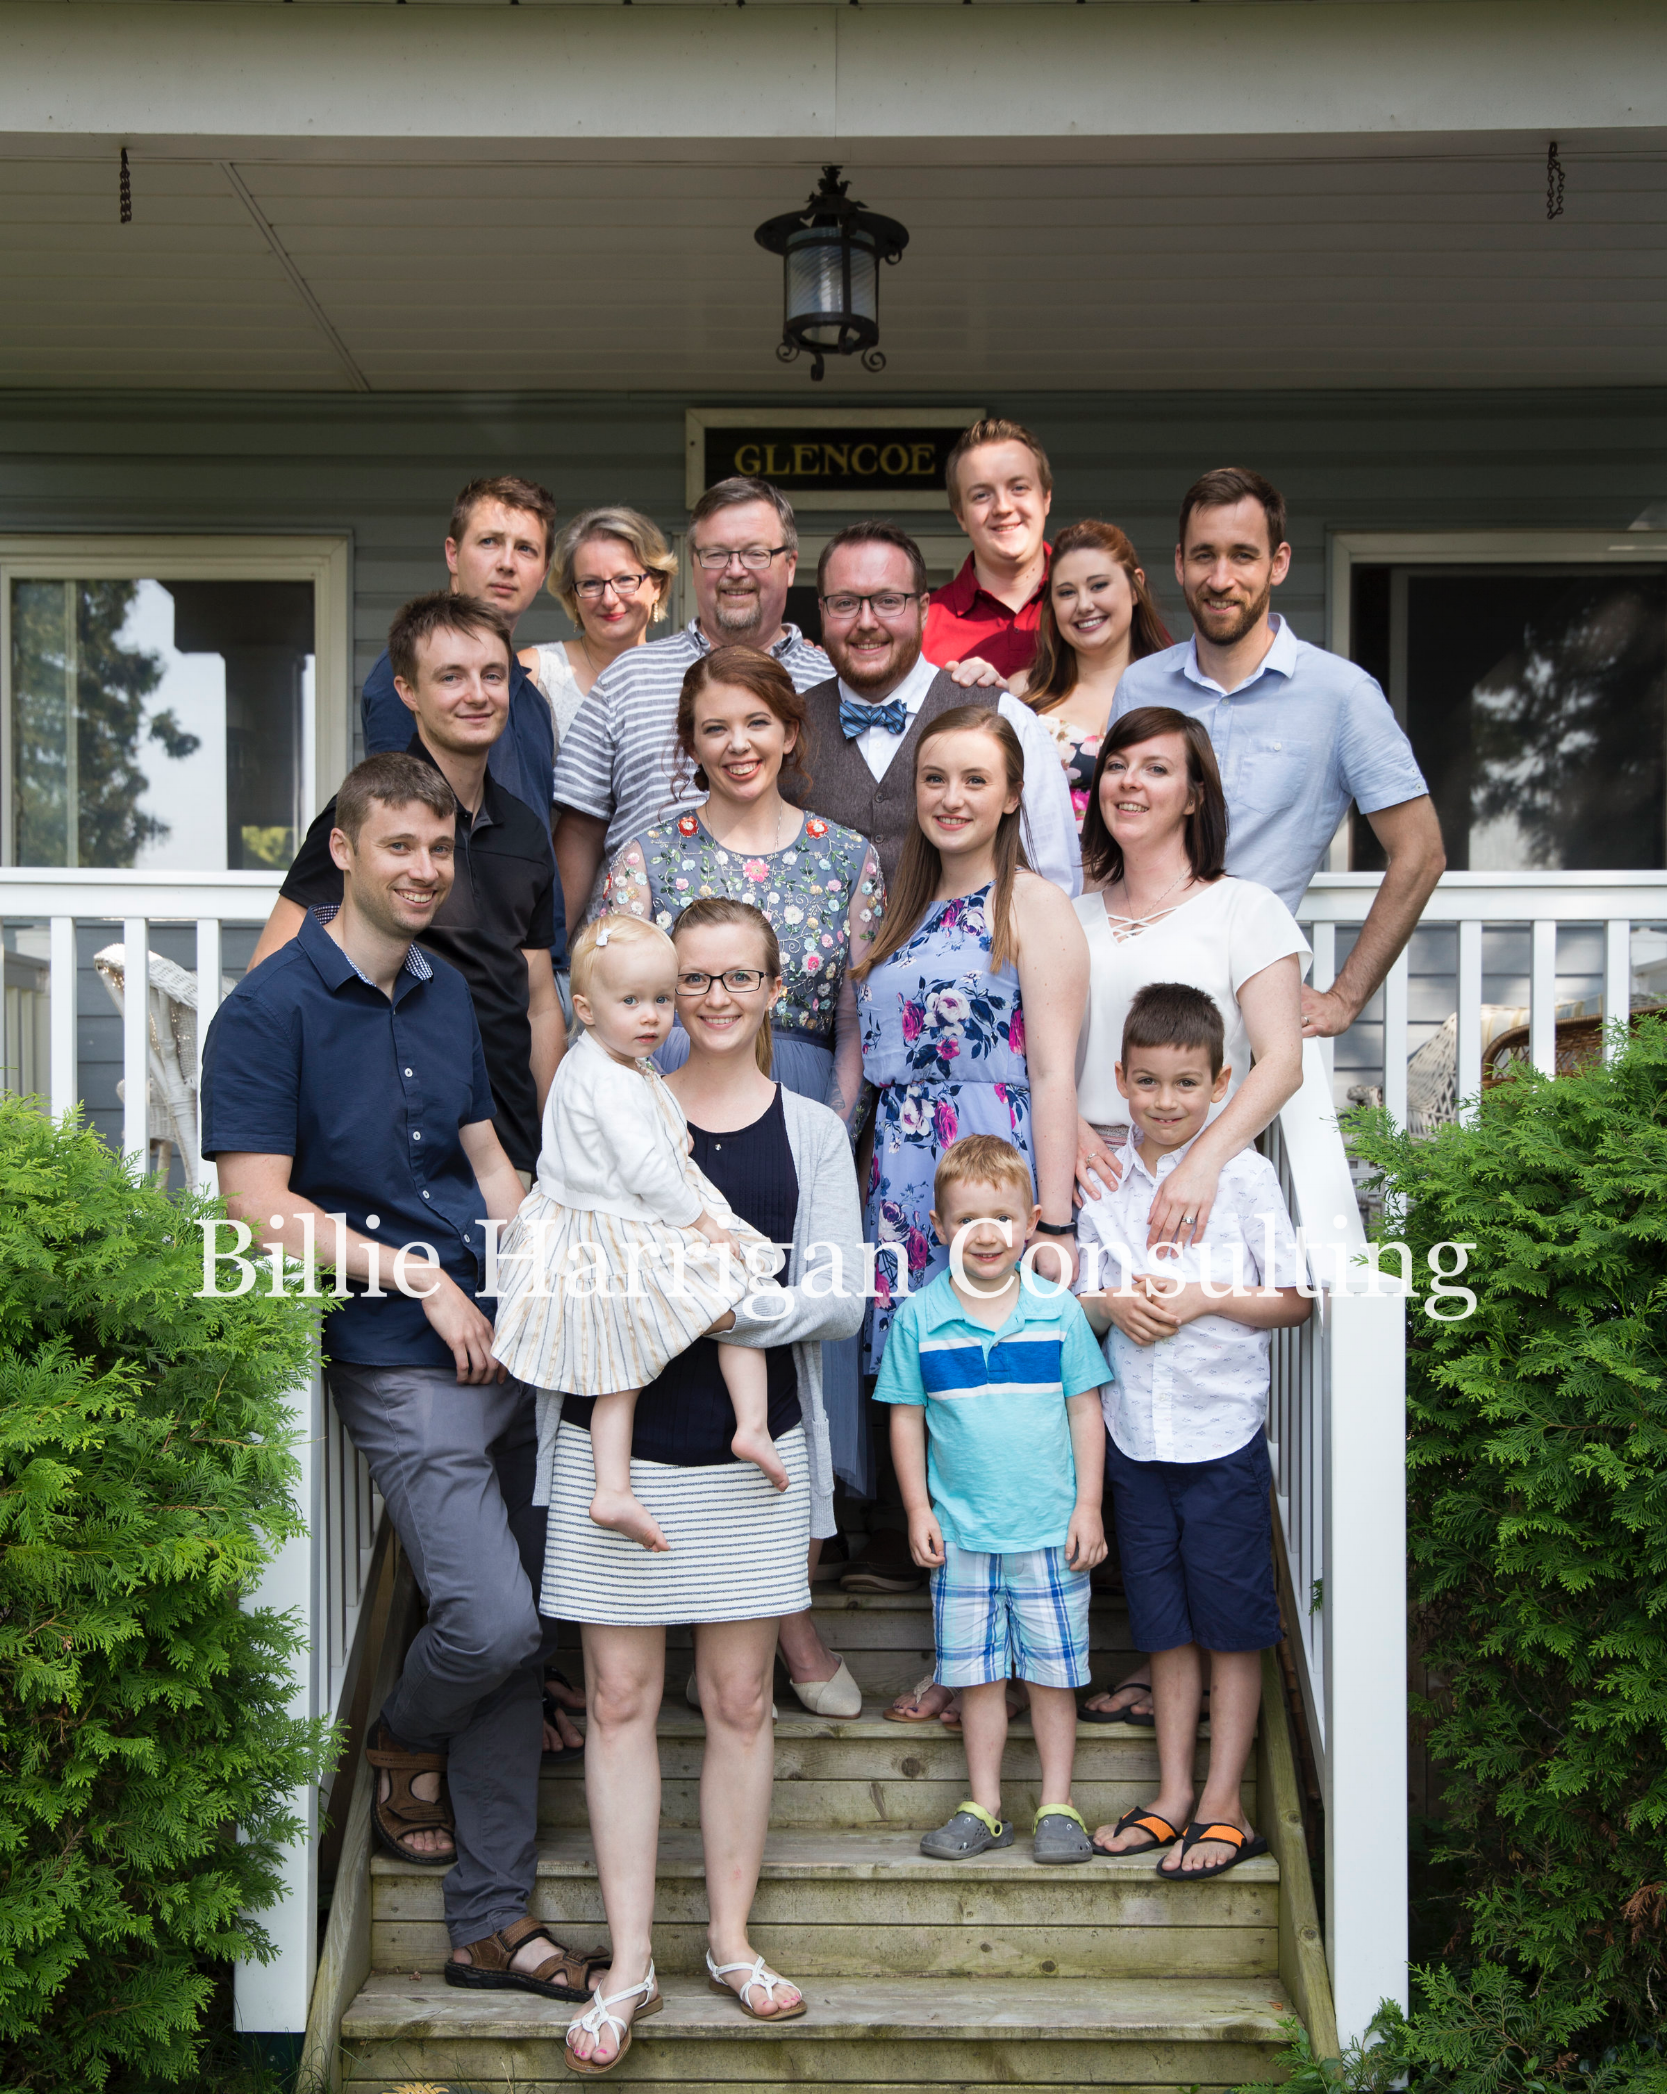 Family photo watermark.png